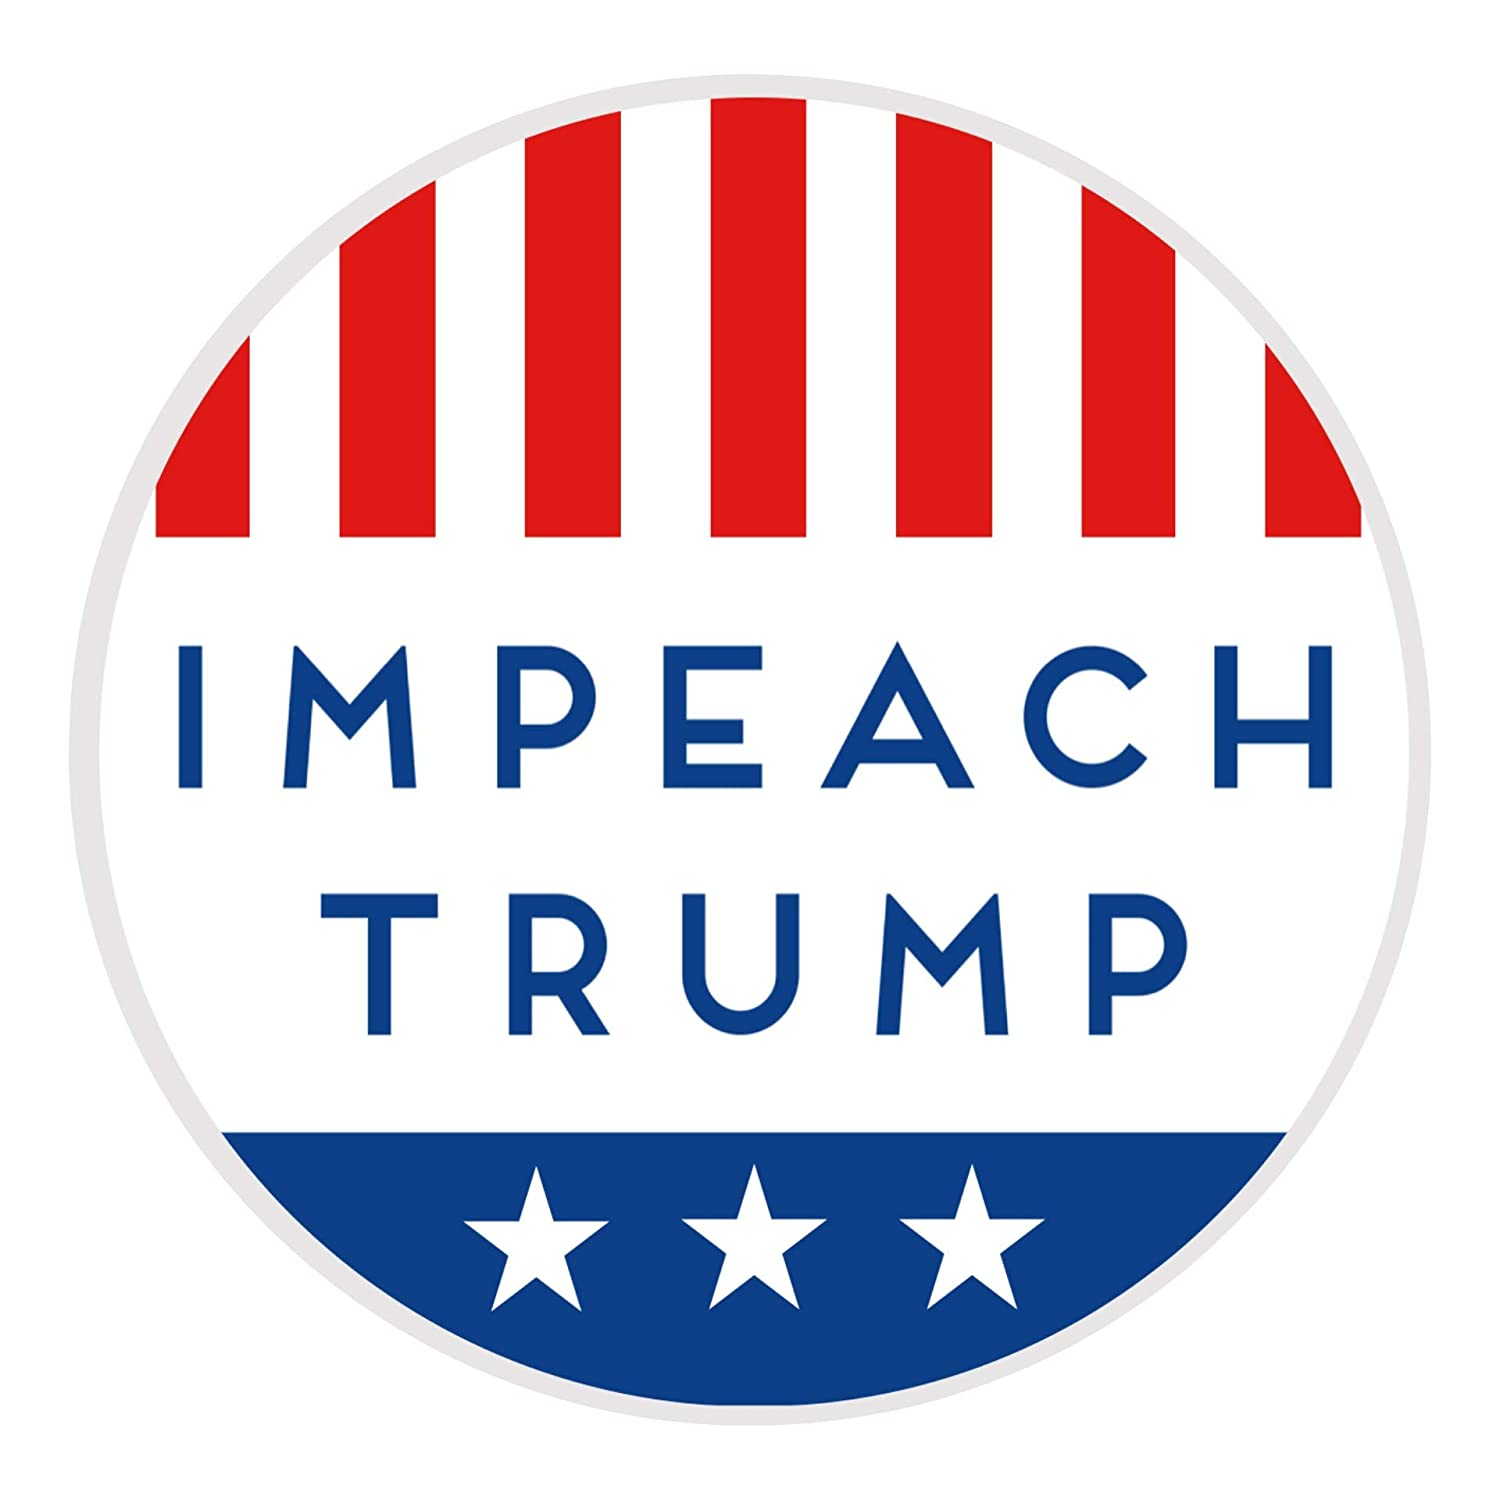 Amazon com impeach trump round american flag anti trump vinyl sticker for cars trucks laptops and more 10 pack automotive